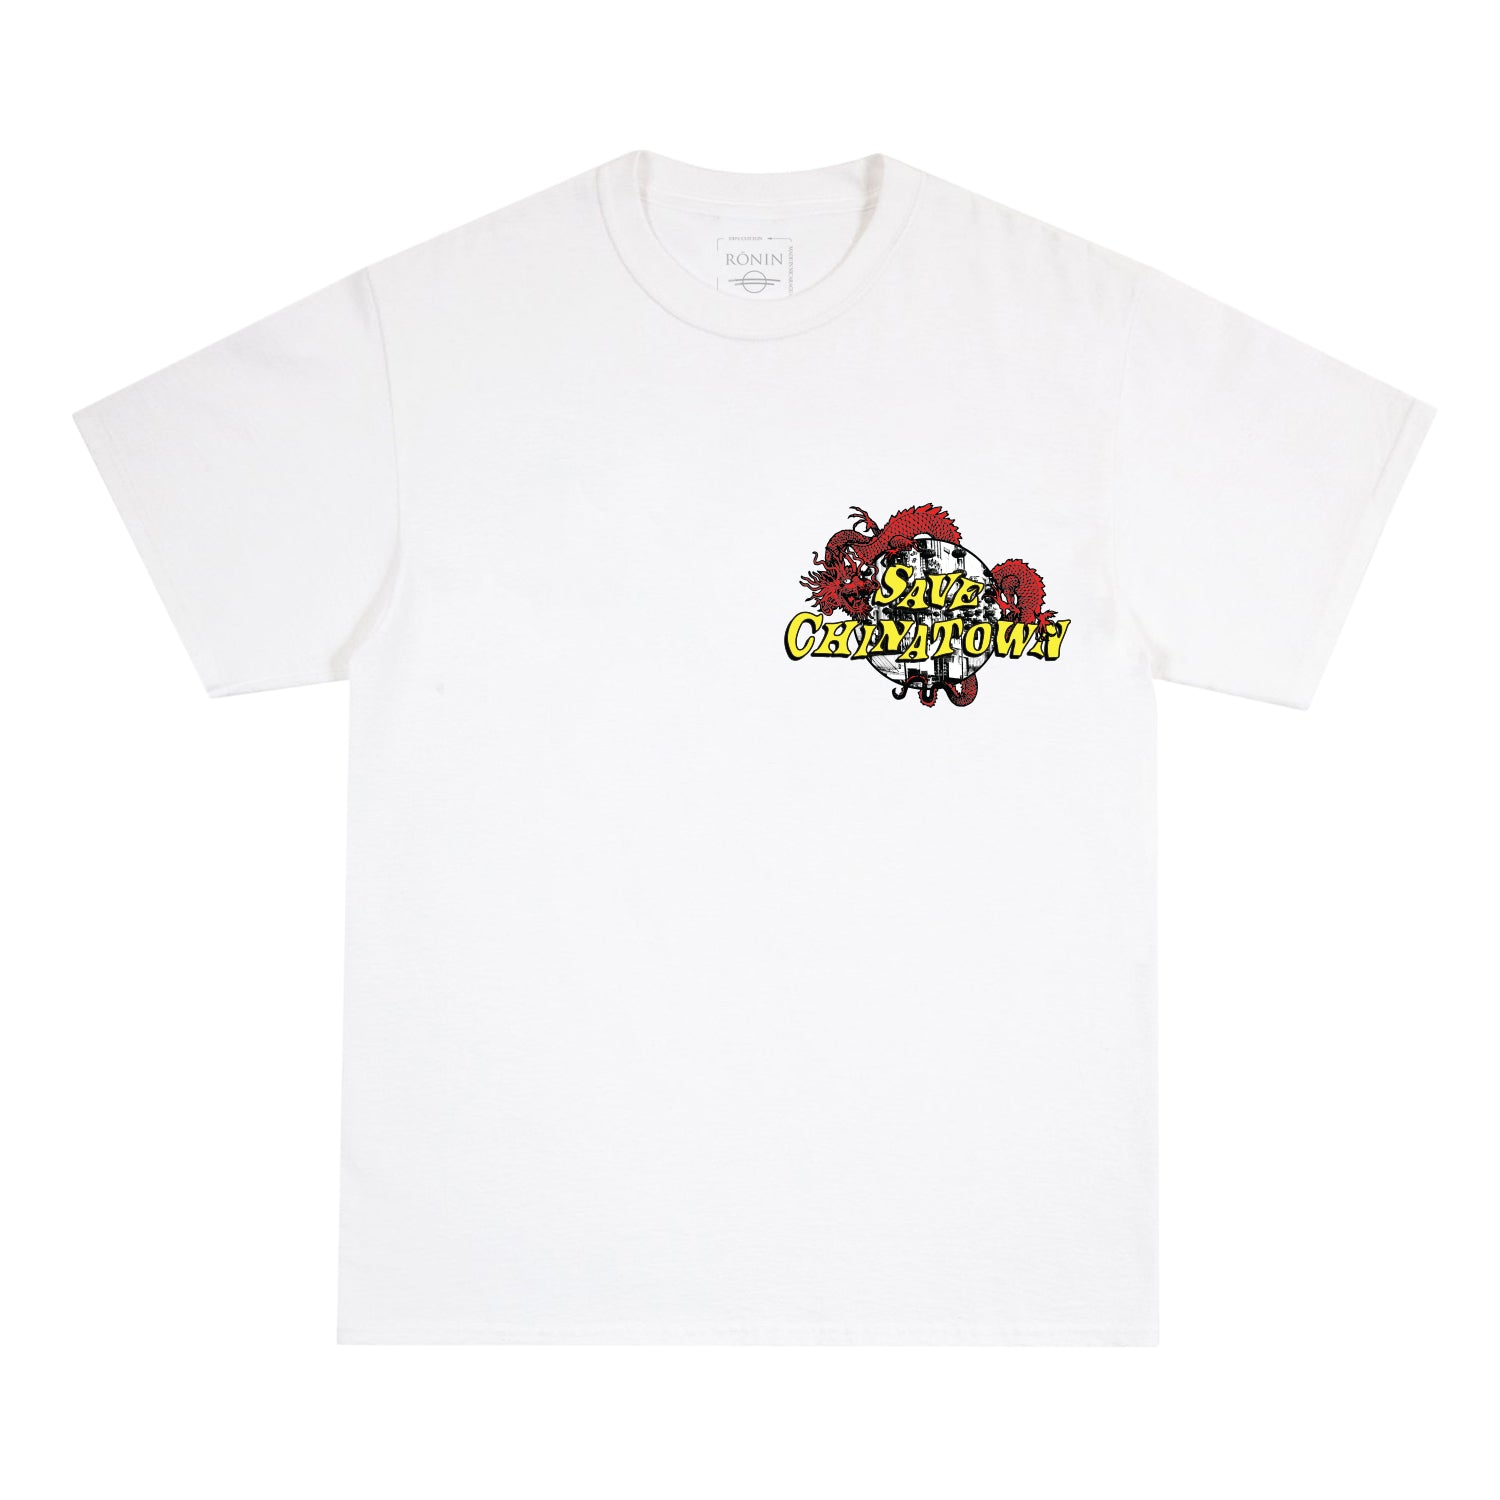 Save Chinatown Tee - White